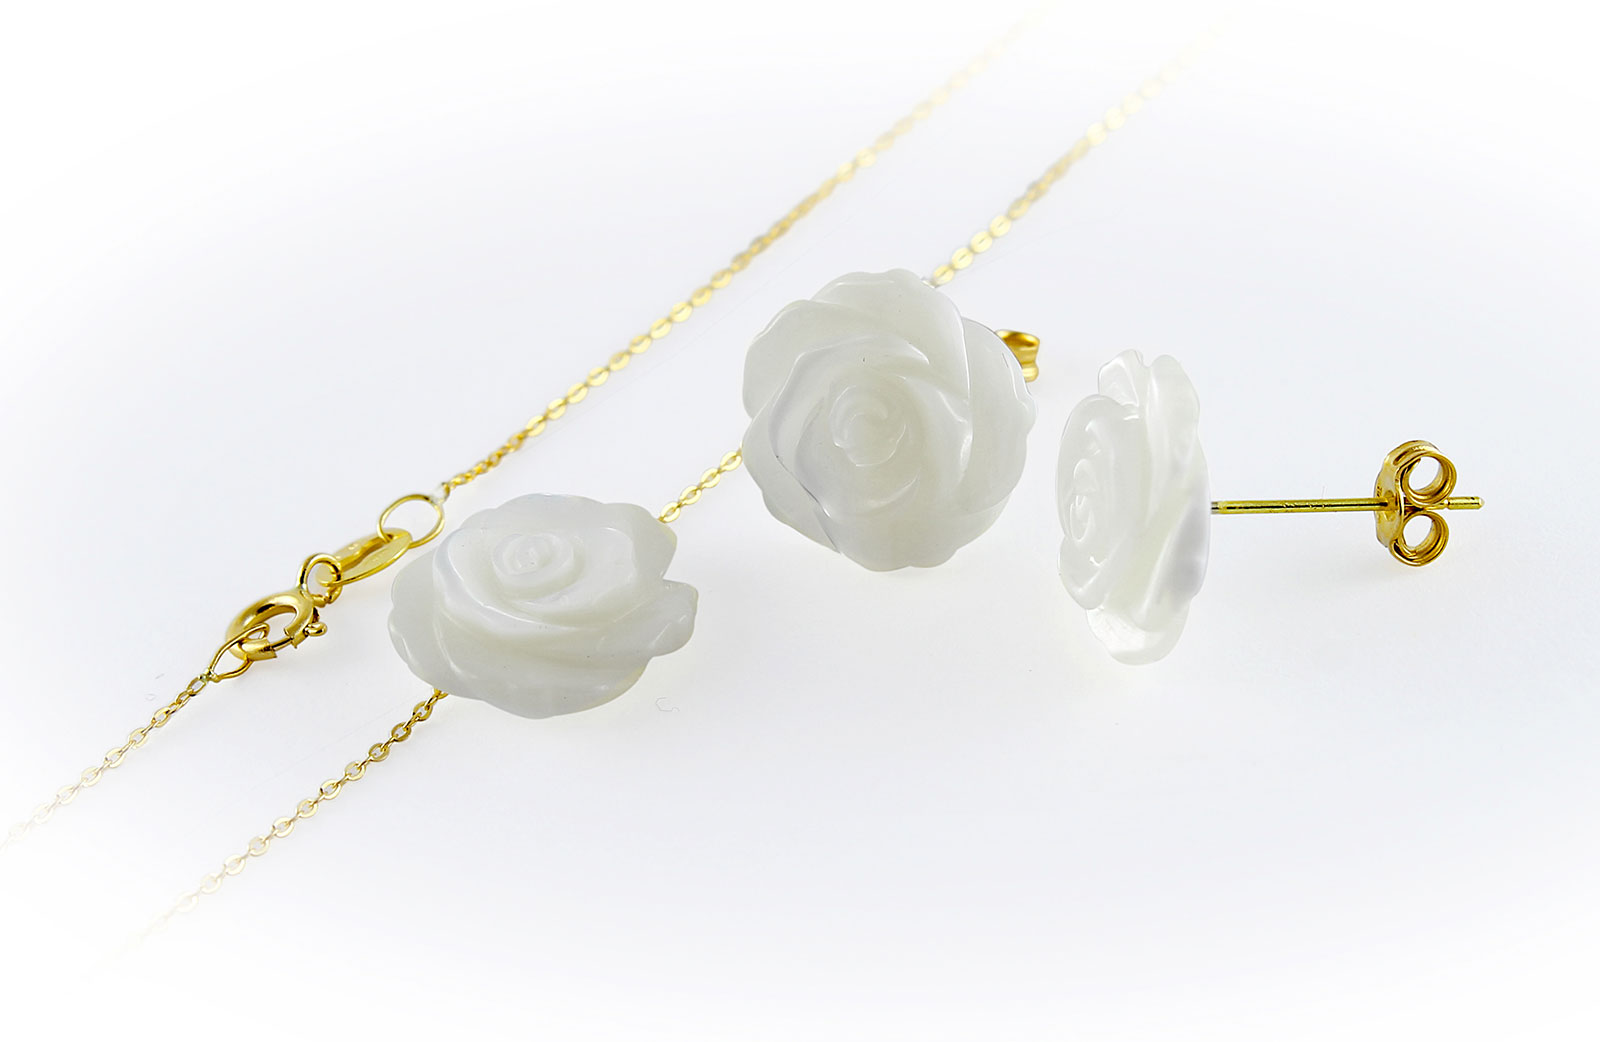 VP Jewels 18K Solid Gold 12mm Rose Carved Mother of Pearl Pendant Necklace and Earring Set